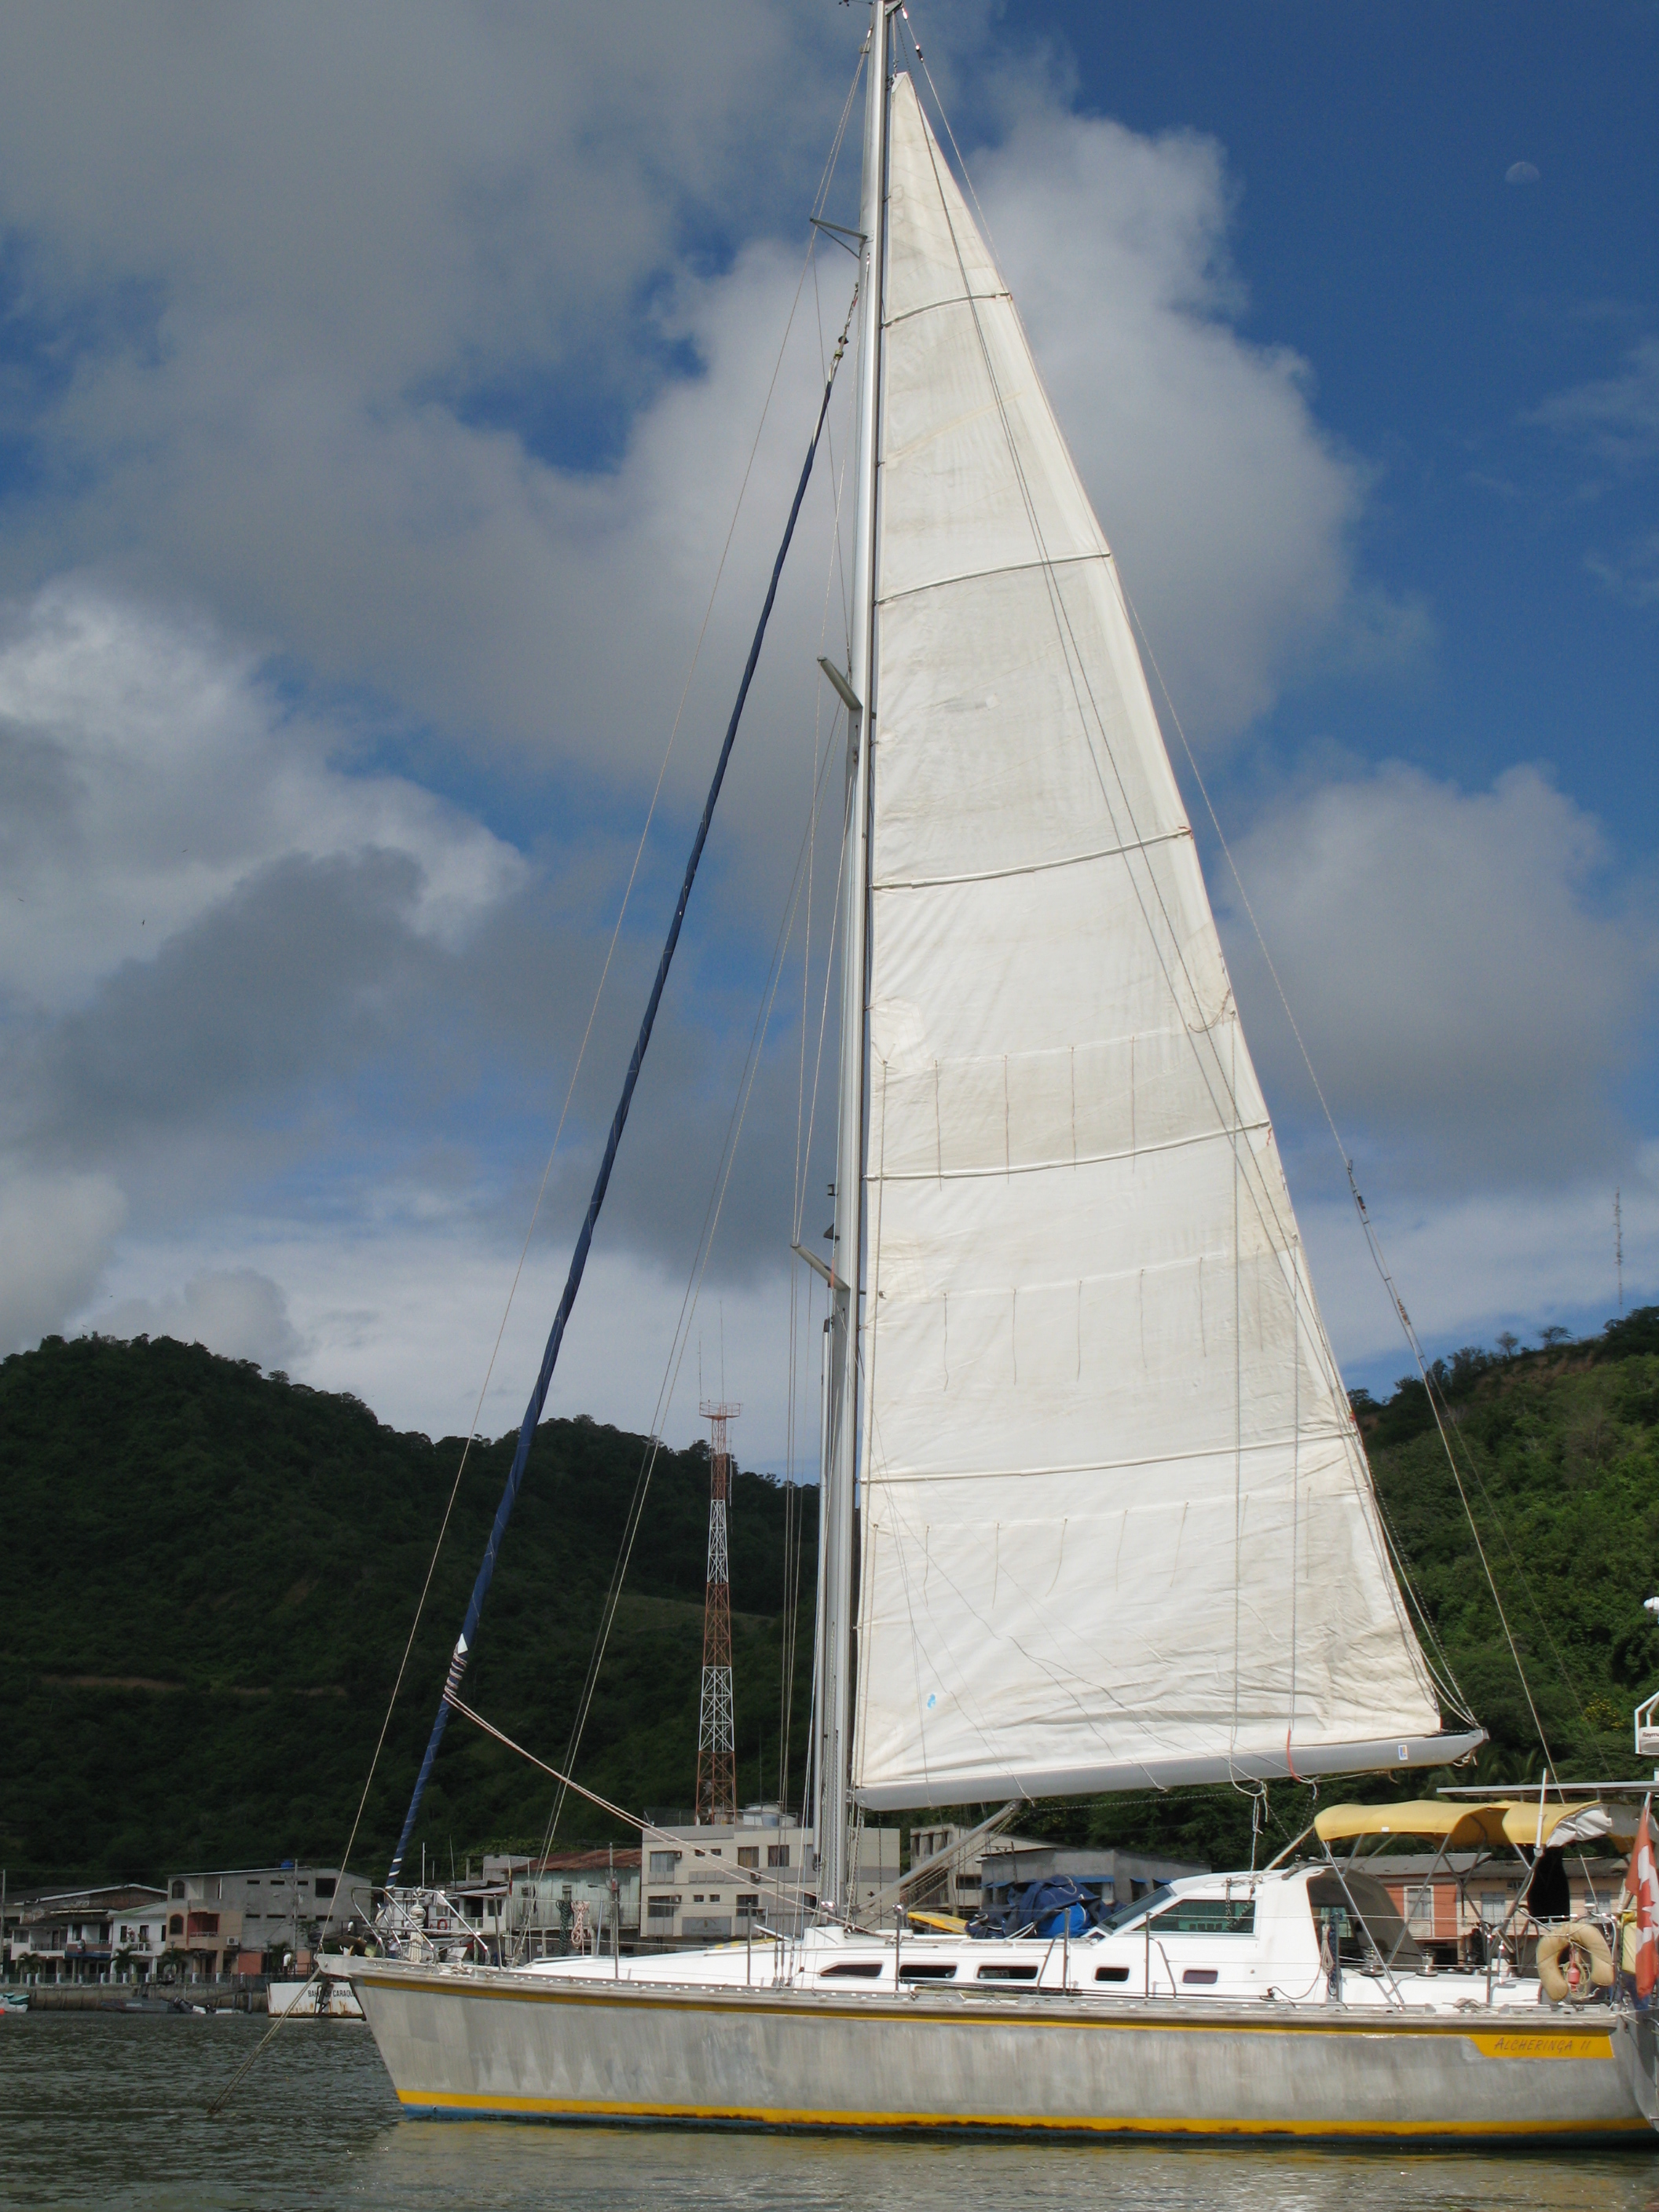 This cruising main has a very conservative roach, almost  nothing. The owners commissioned a new sail and specified a much larger roach, so big in fact that when tacking they had to lower the mainsail a few feet.